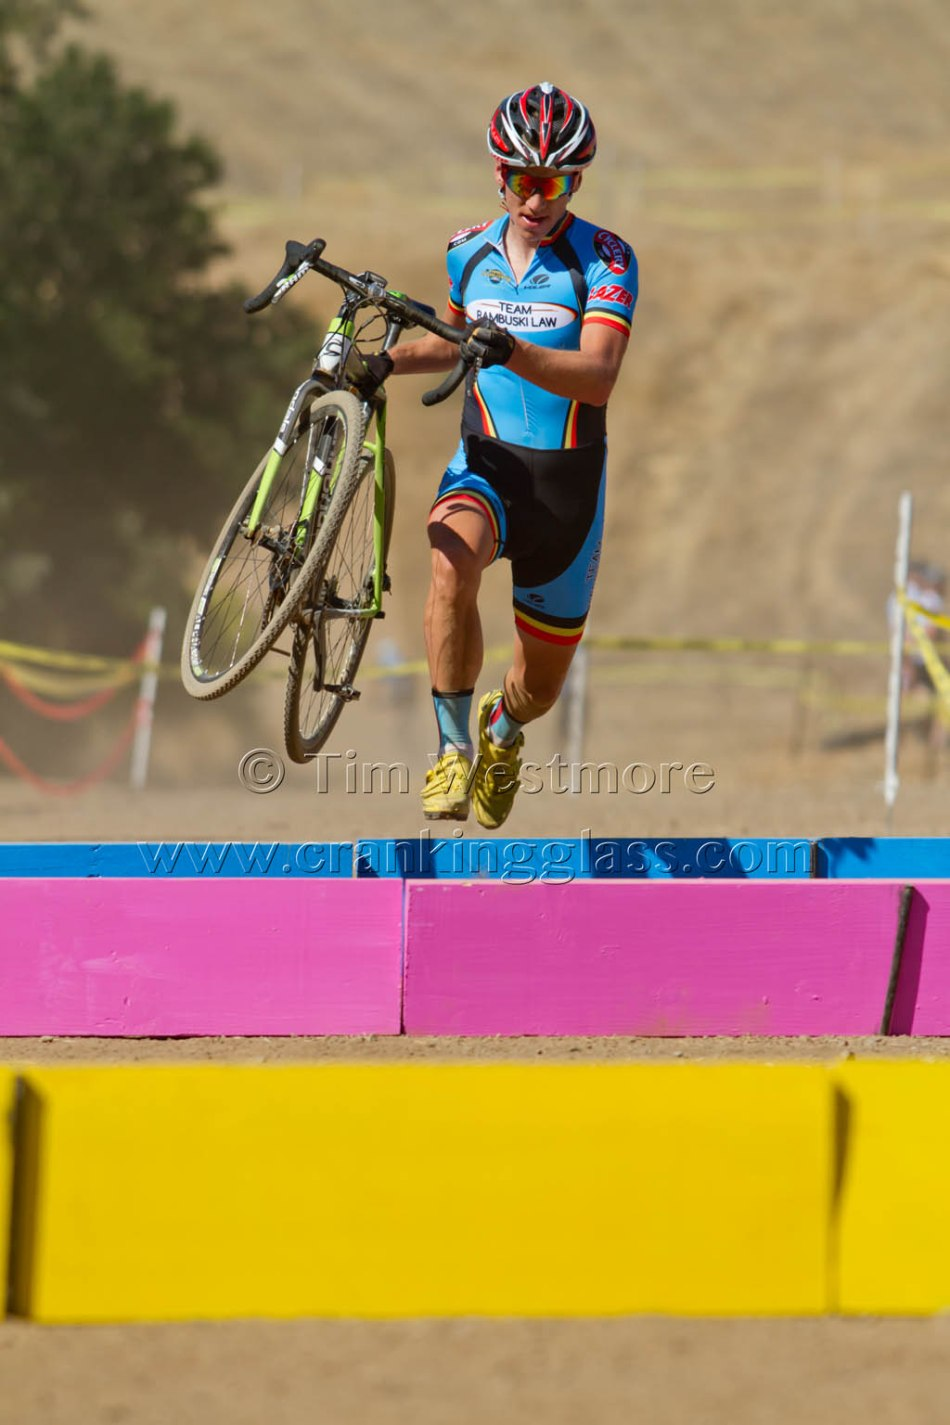 Colour Coordinated Race Kit and Cougar Plank Barriers - Keith Hillier (Team Rambuski Law)